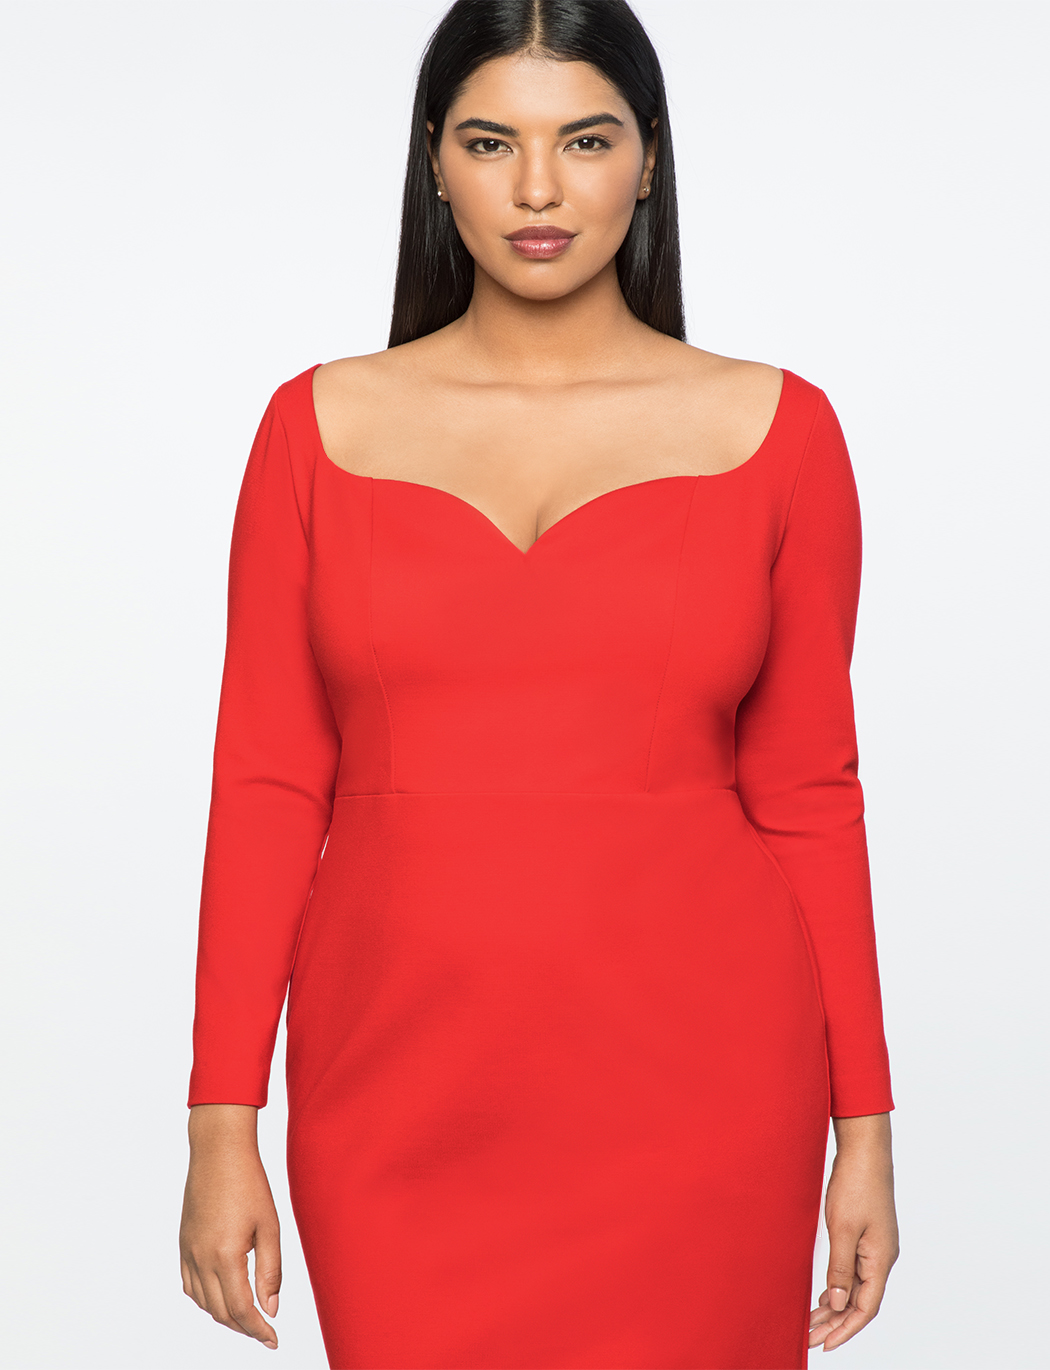 Jason Wu X ELOQUII Sweetheart Sheath Dress